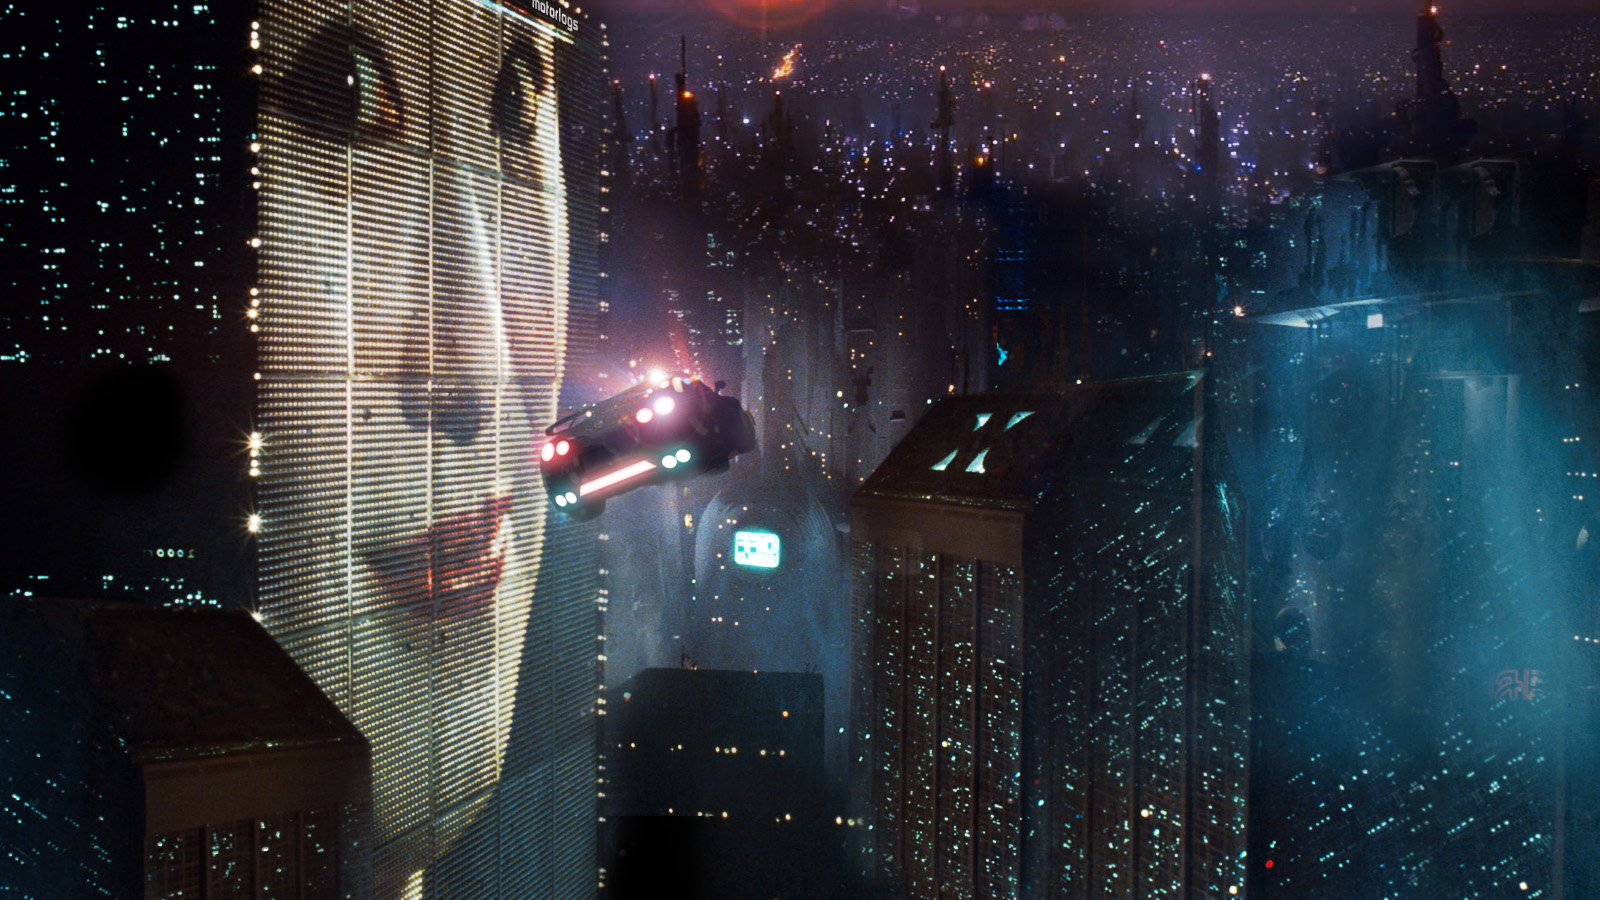 Blade Runner might not be your usual Halloween pick, but it's undeniably creepy.